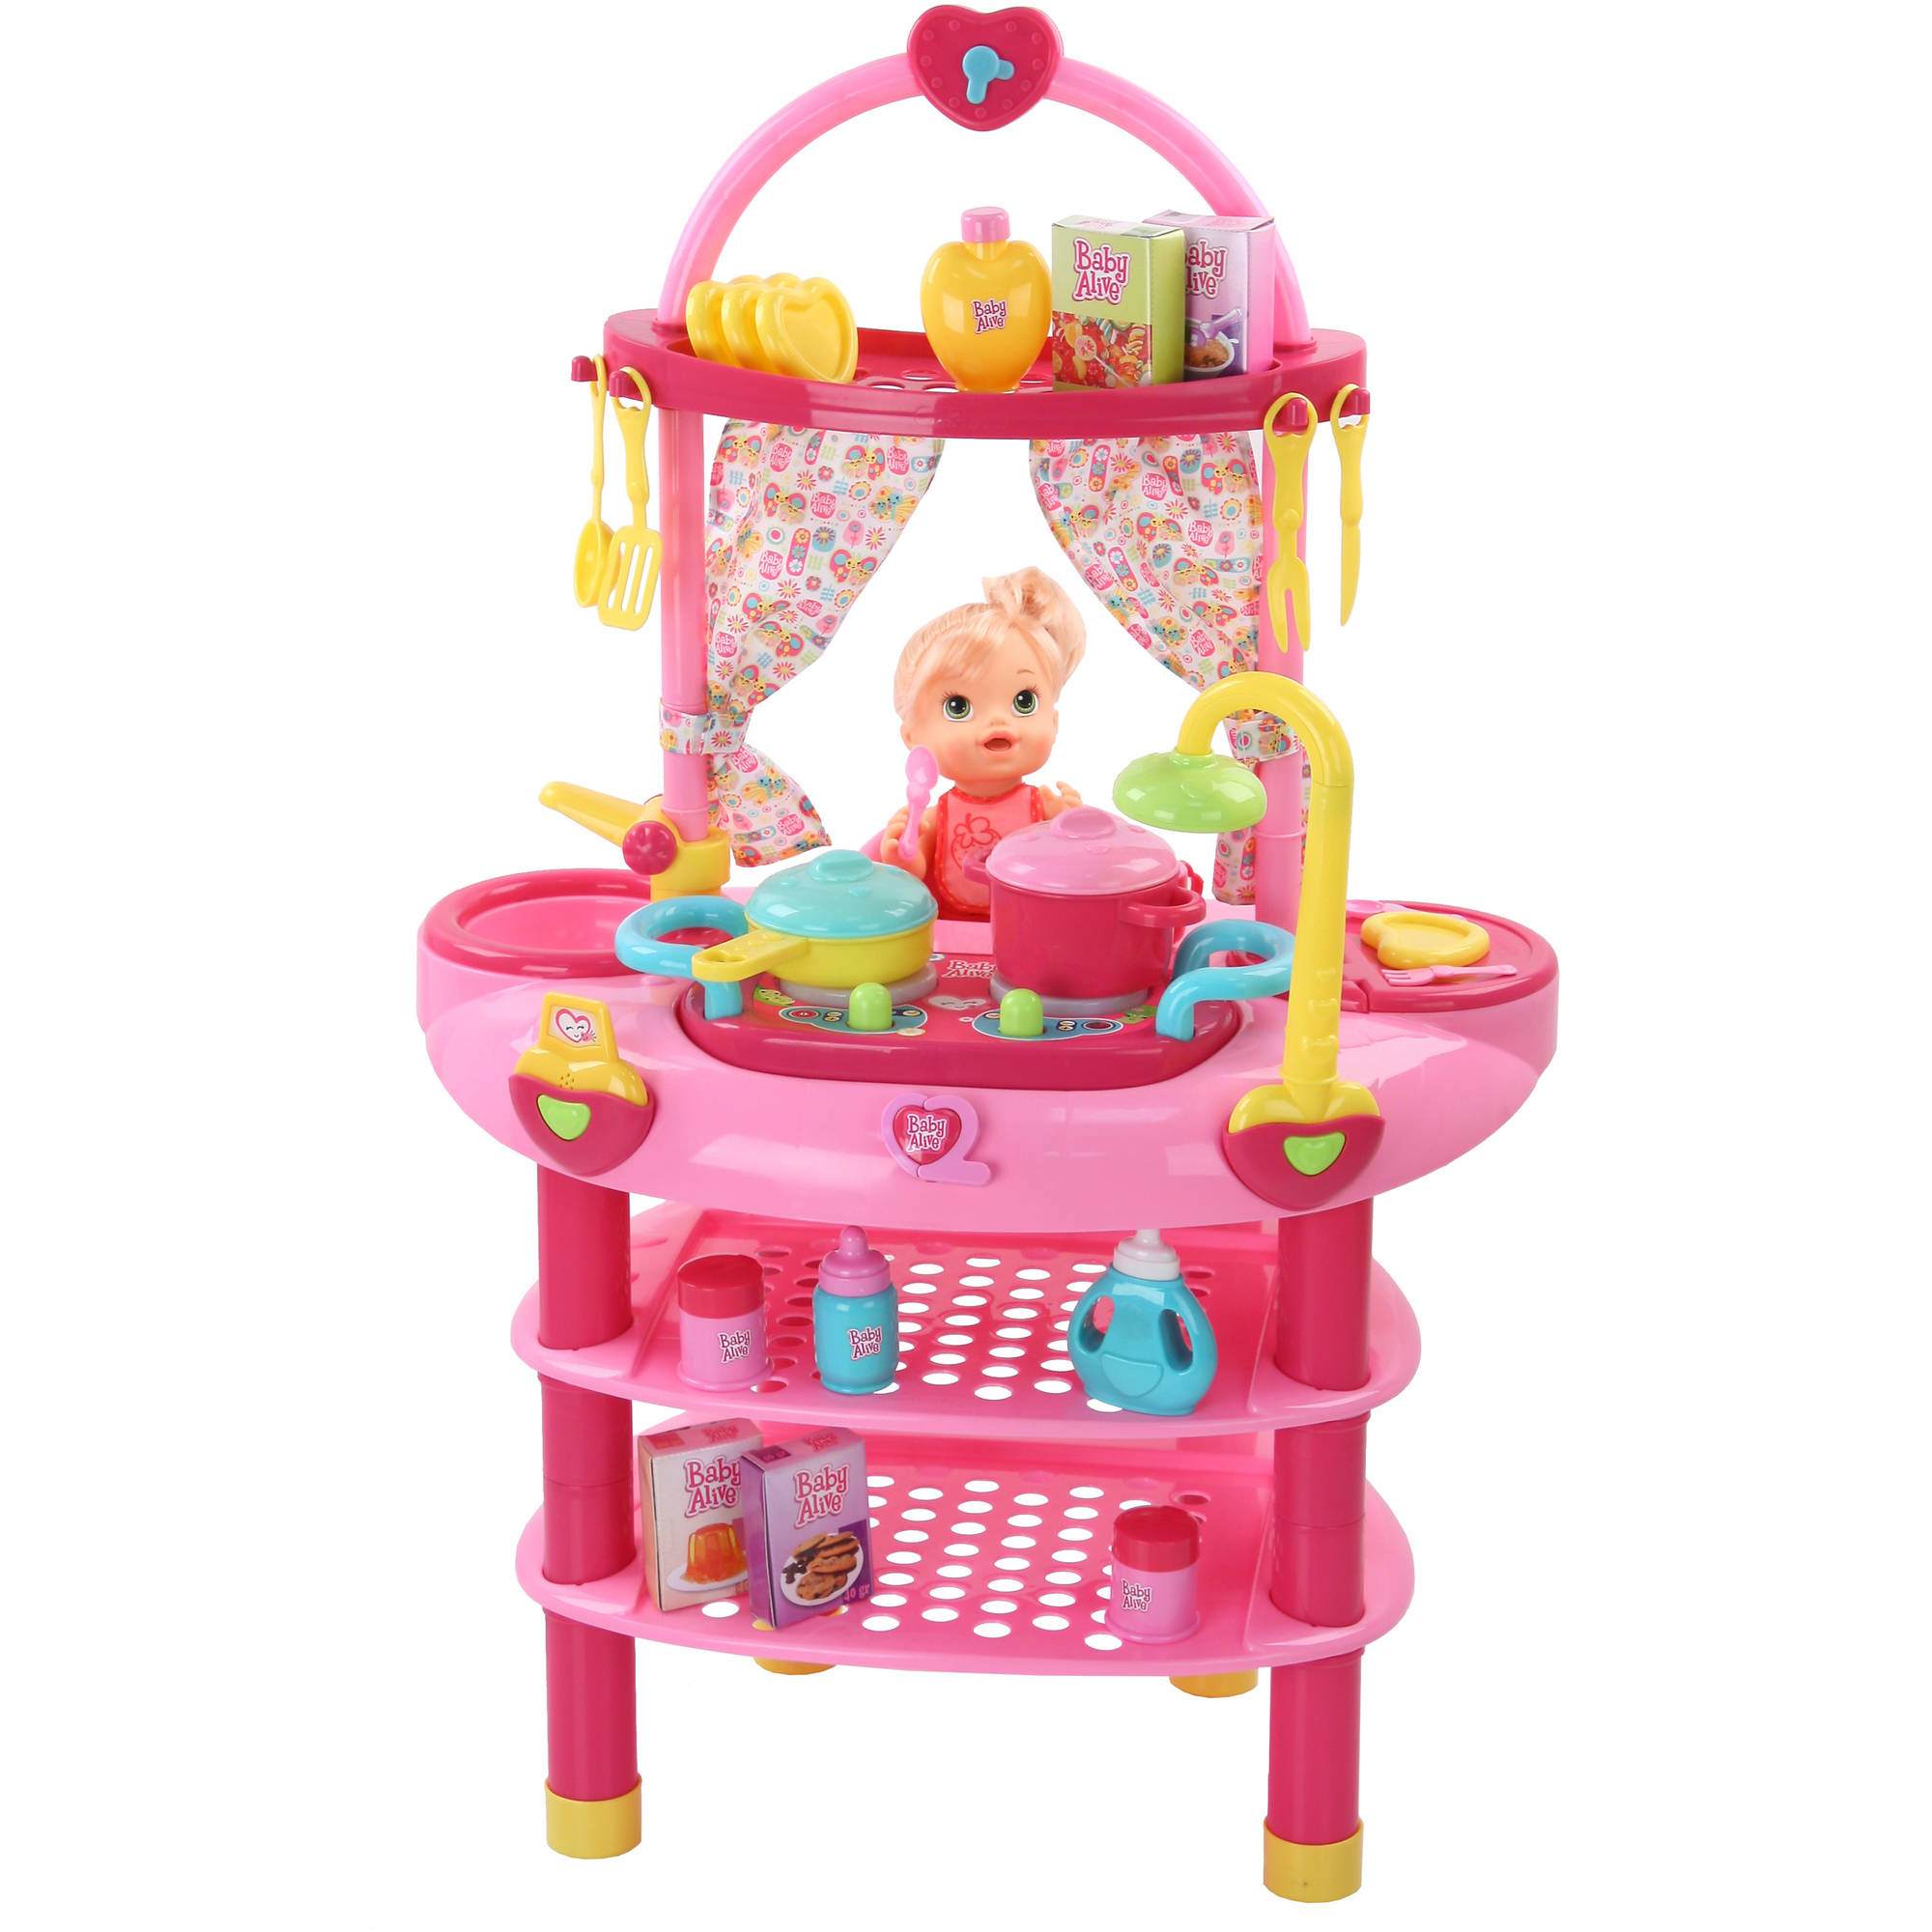 Baby Alive Doll 3 in 1 Cook n Care Kitchen Set